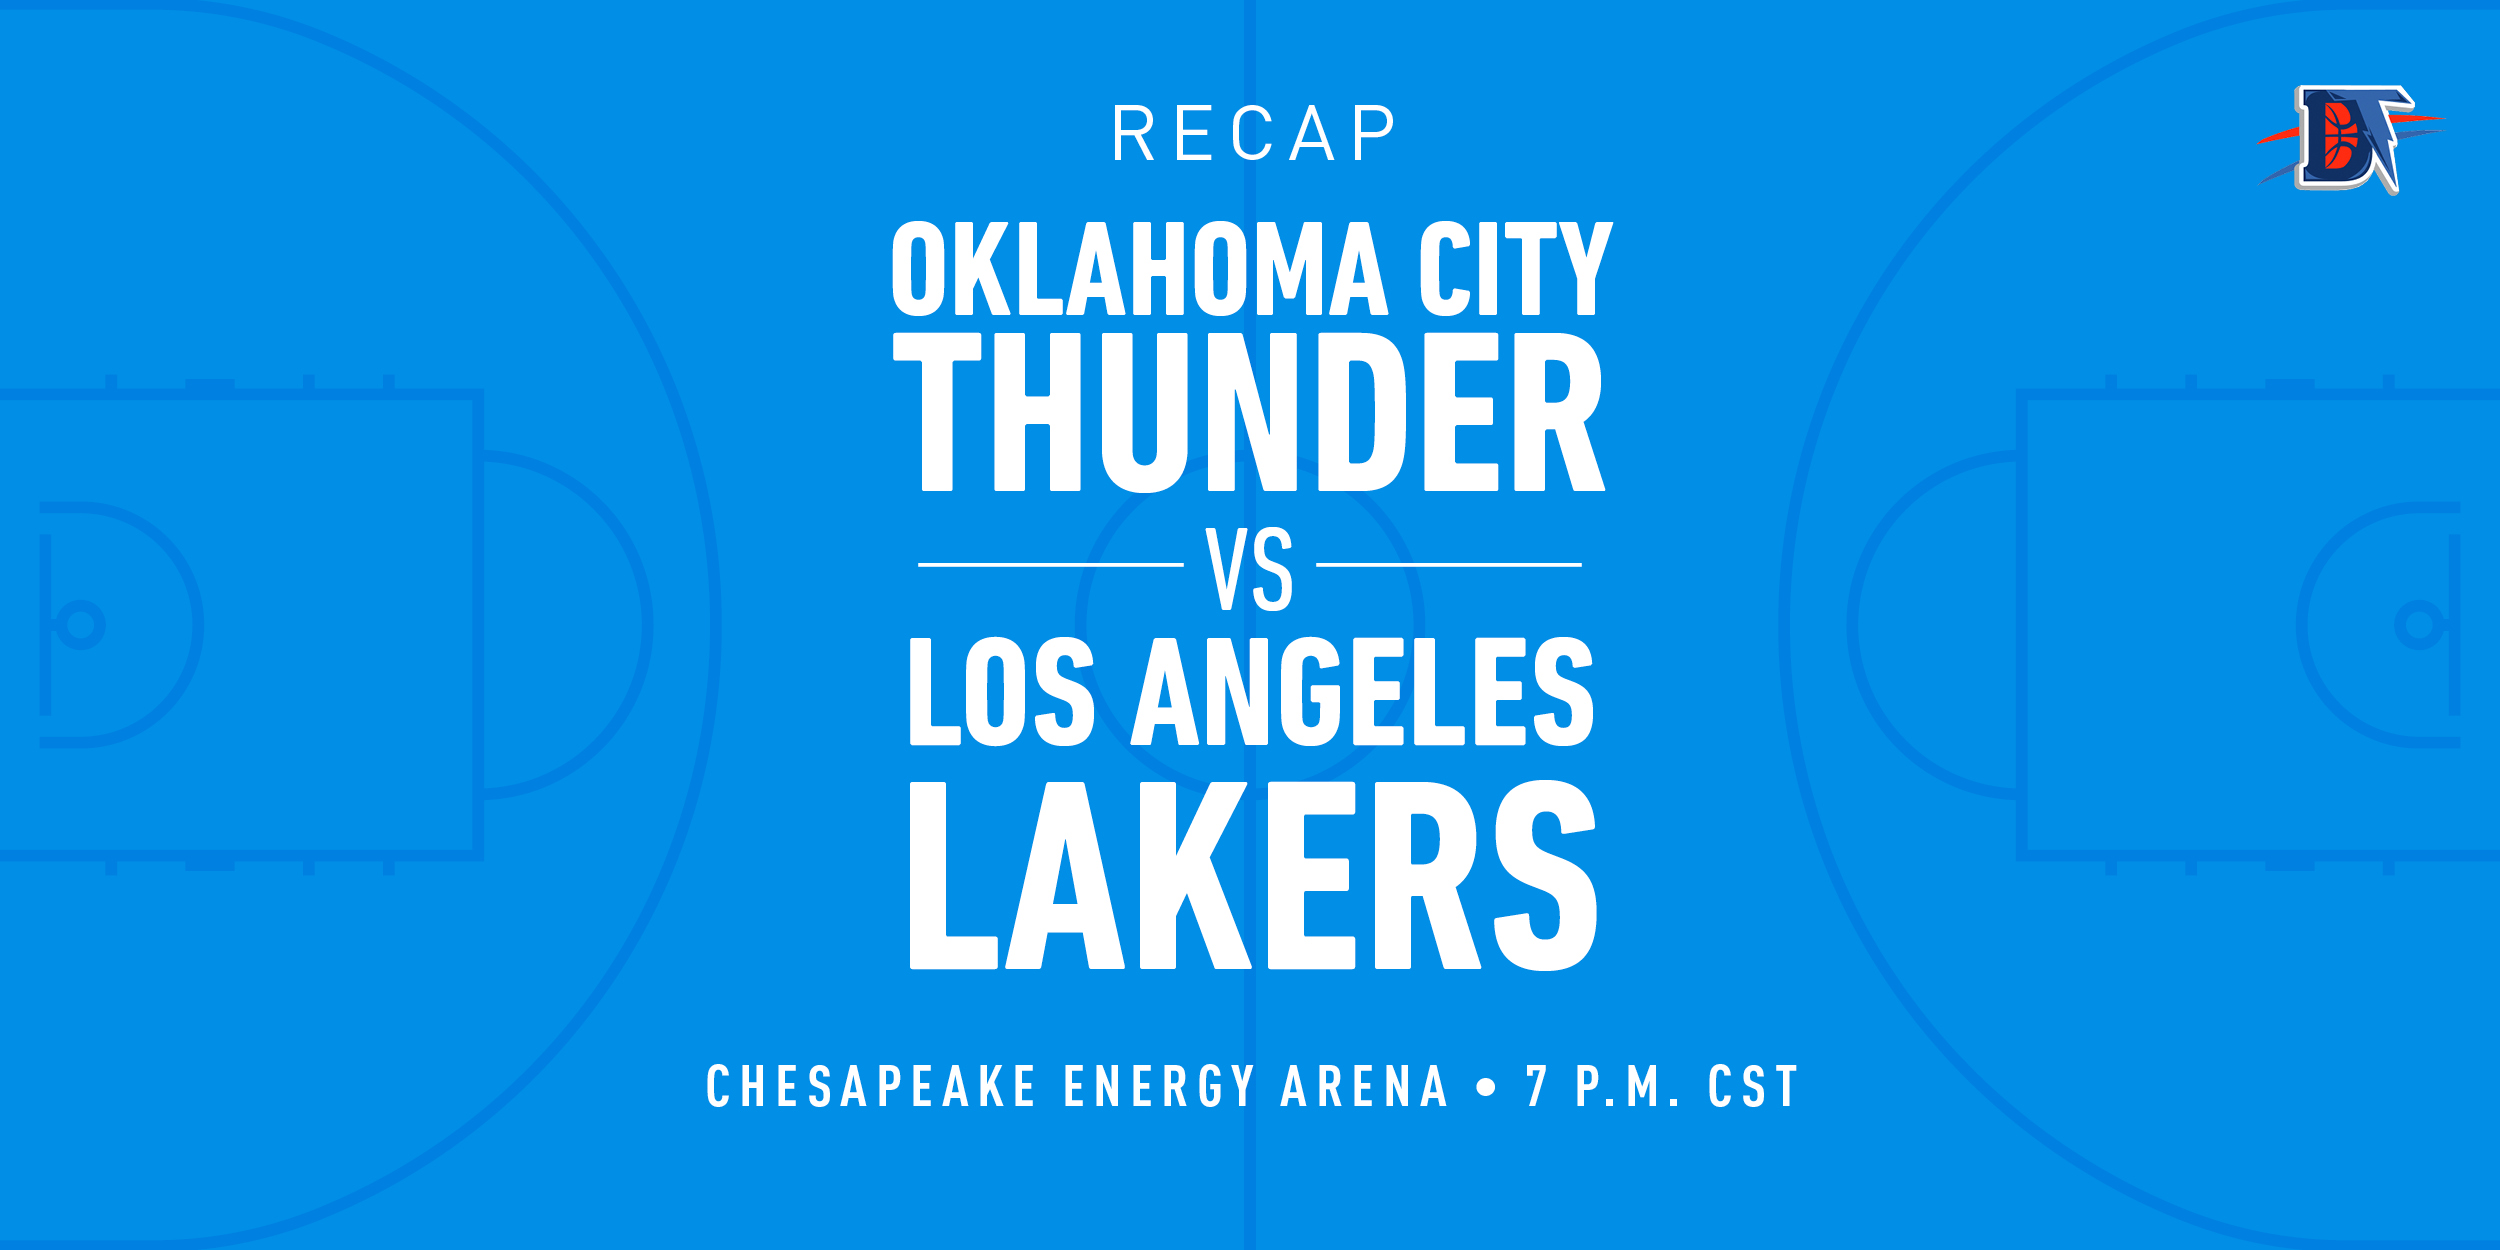 Game 39 Recap: Lakers (32-7) def. Thunder (22-17) 125-110